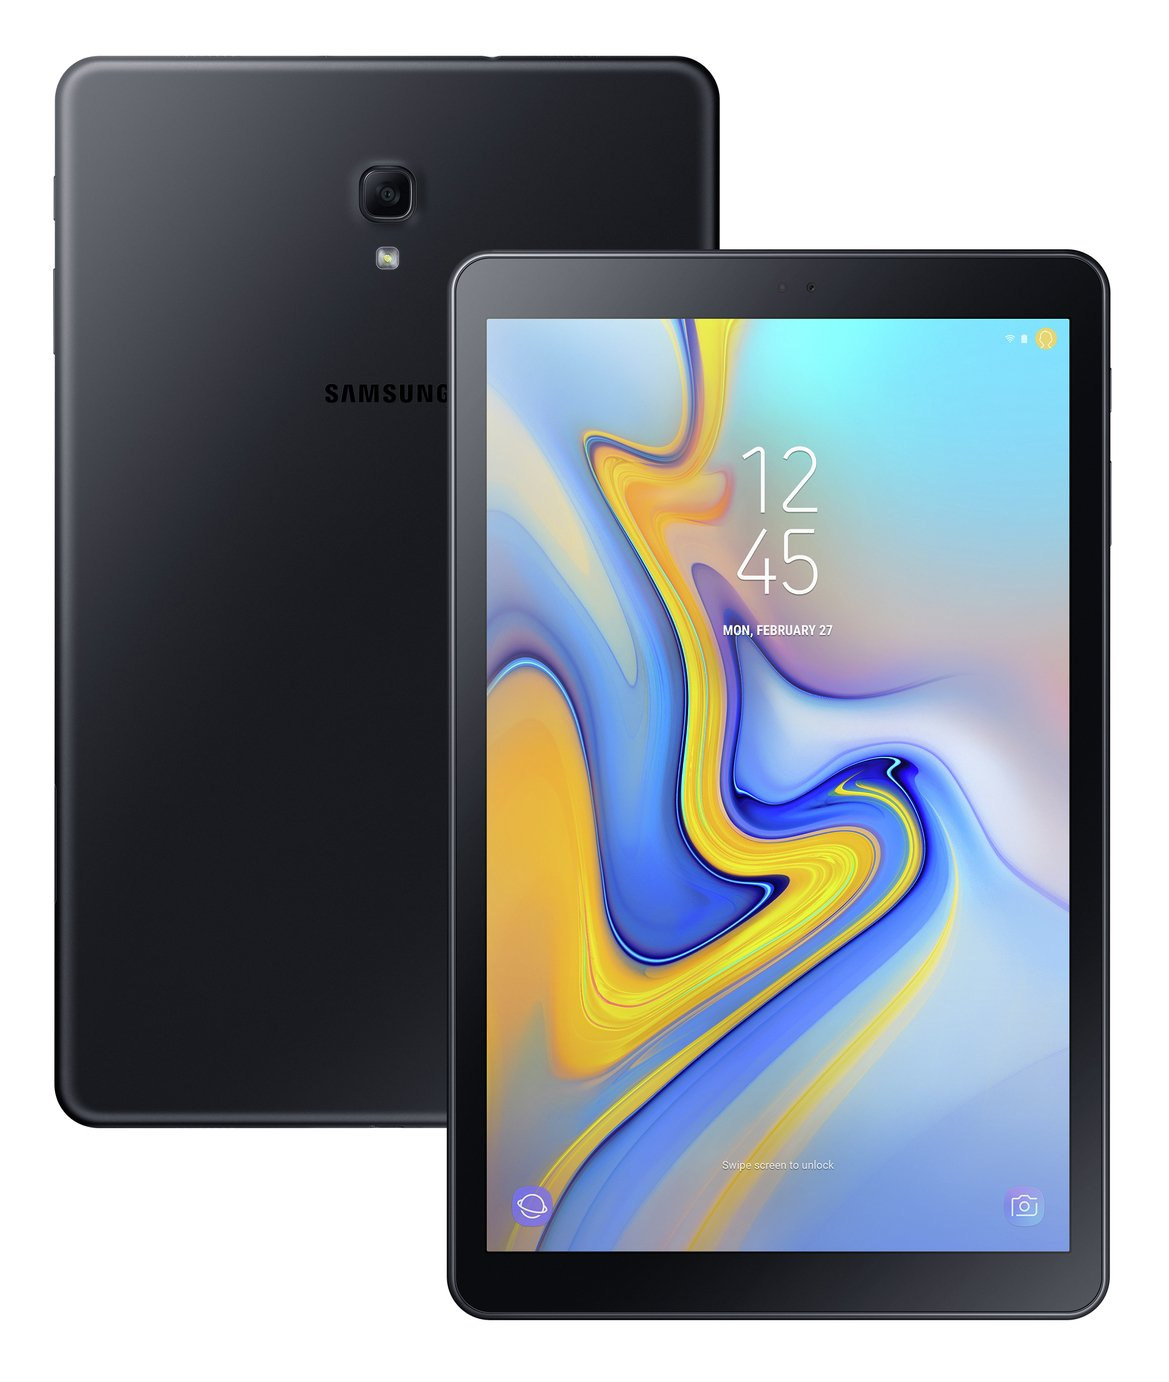 Samsung Galaxy Tab A 10.5 Inch 32GB Wi-Fi Tablet - Black